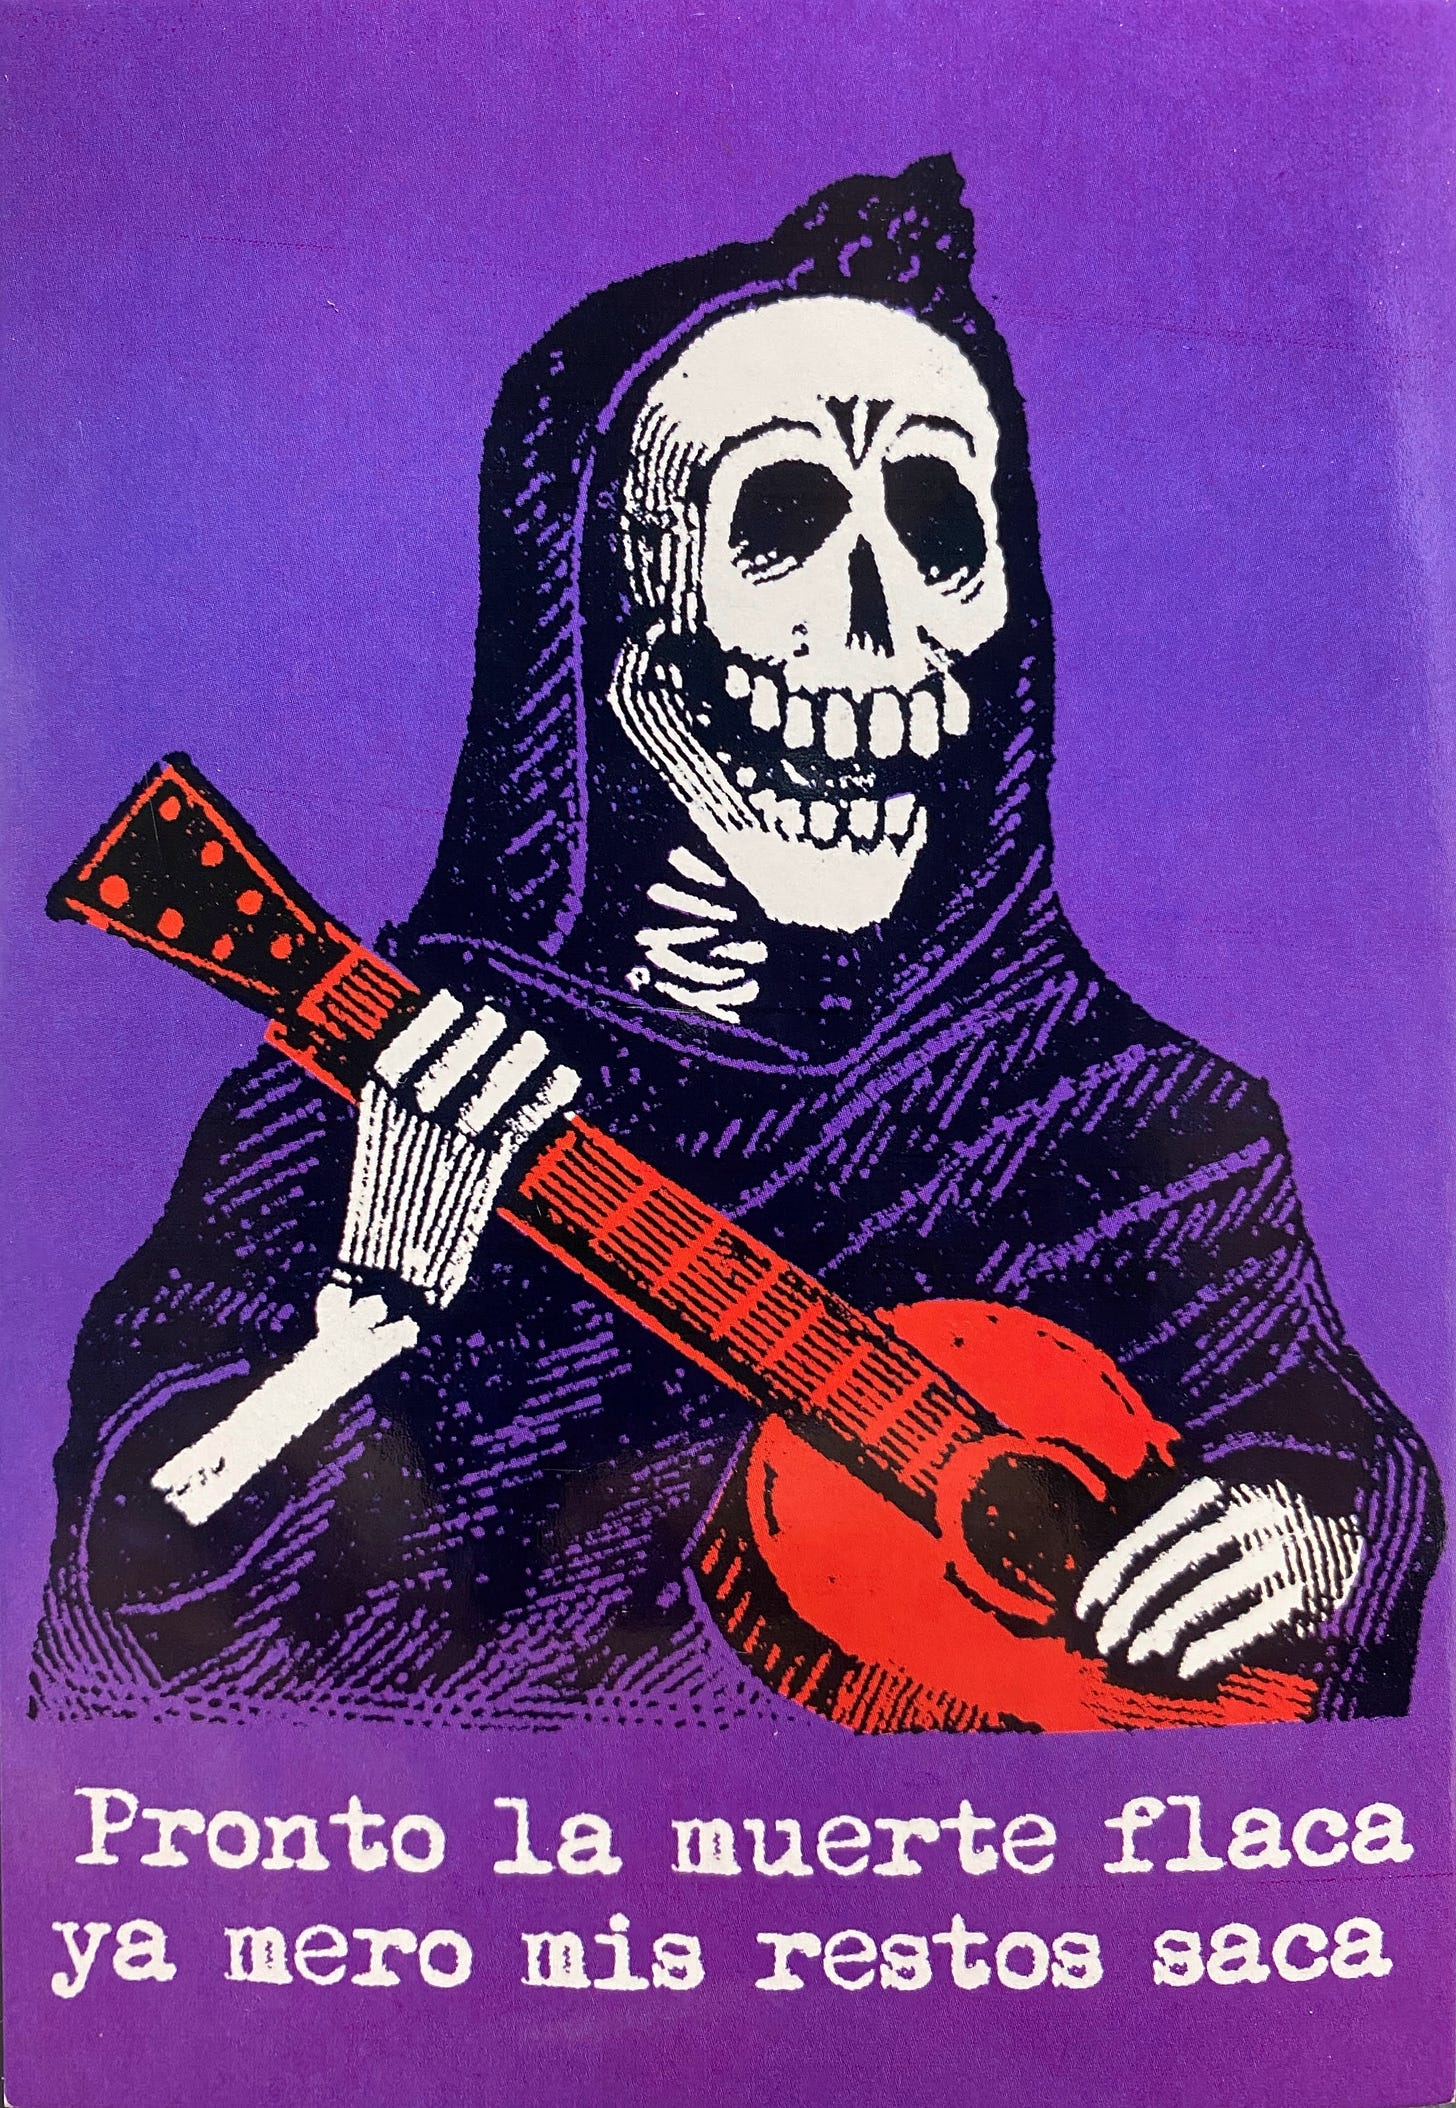 Portrait of a skeleton wearing a sarape over their cranium and body, while holding a red guitar.